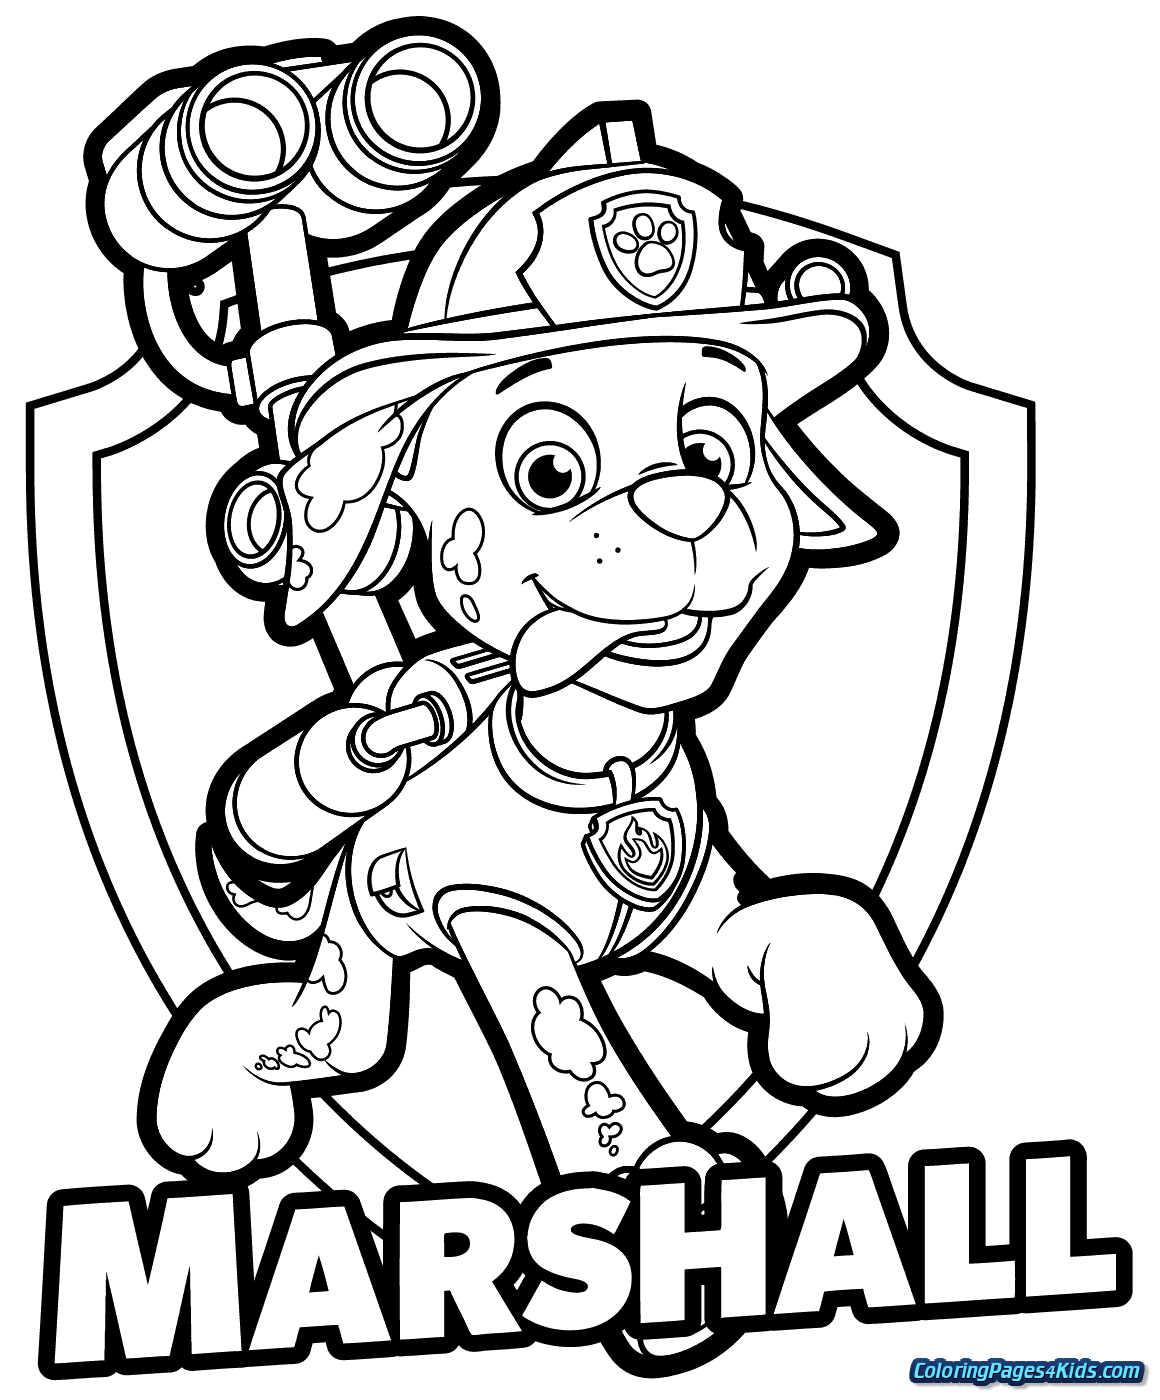 paw patrol pictures to print paw patrol coloring pages printable free coloring sheets to pictures print patrol paw